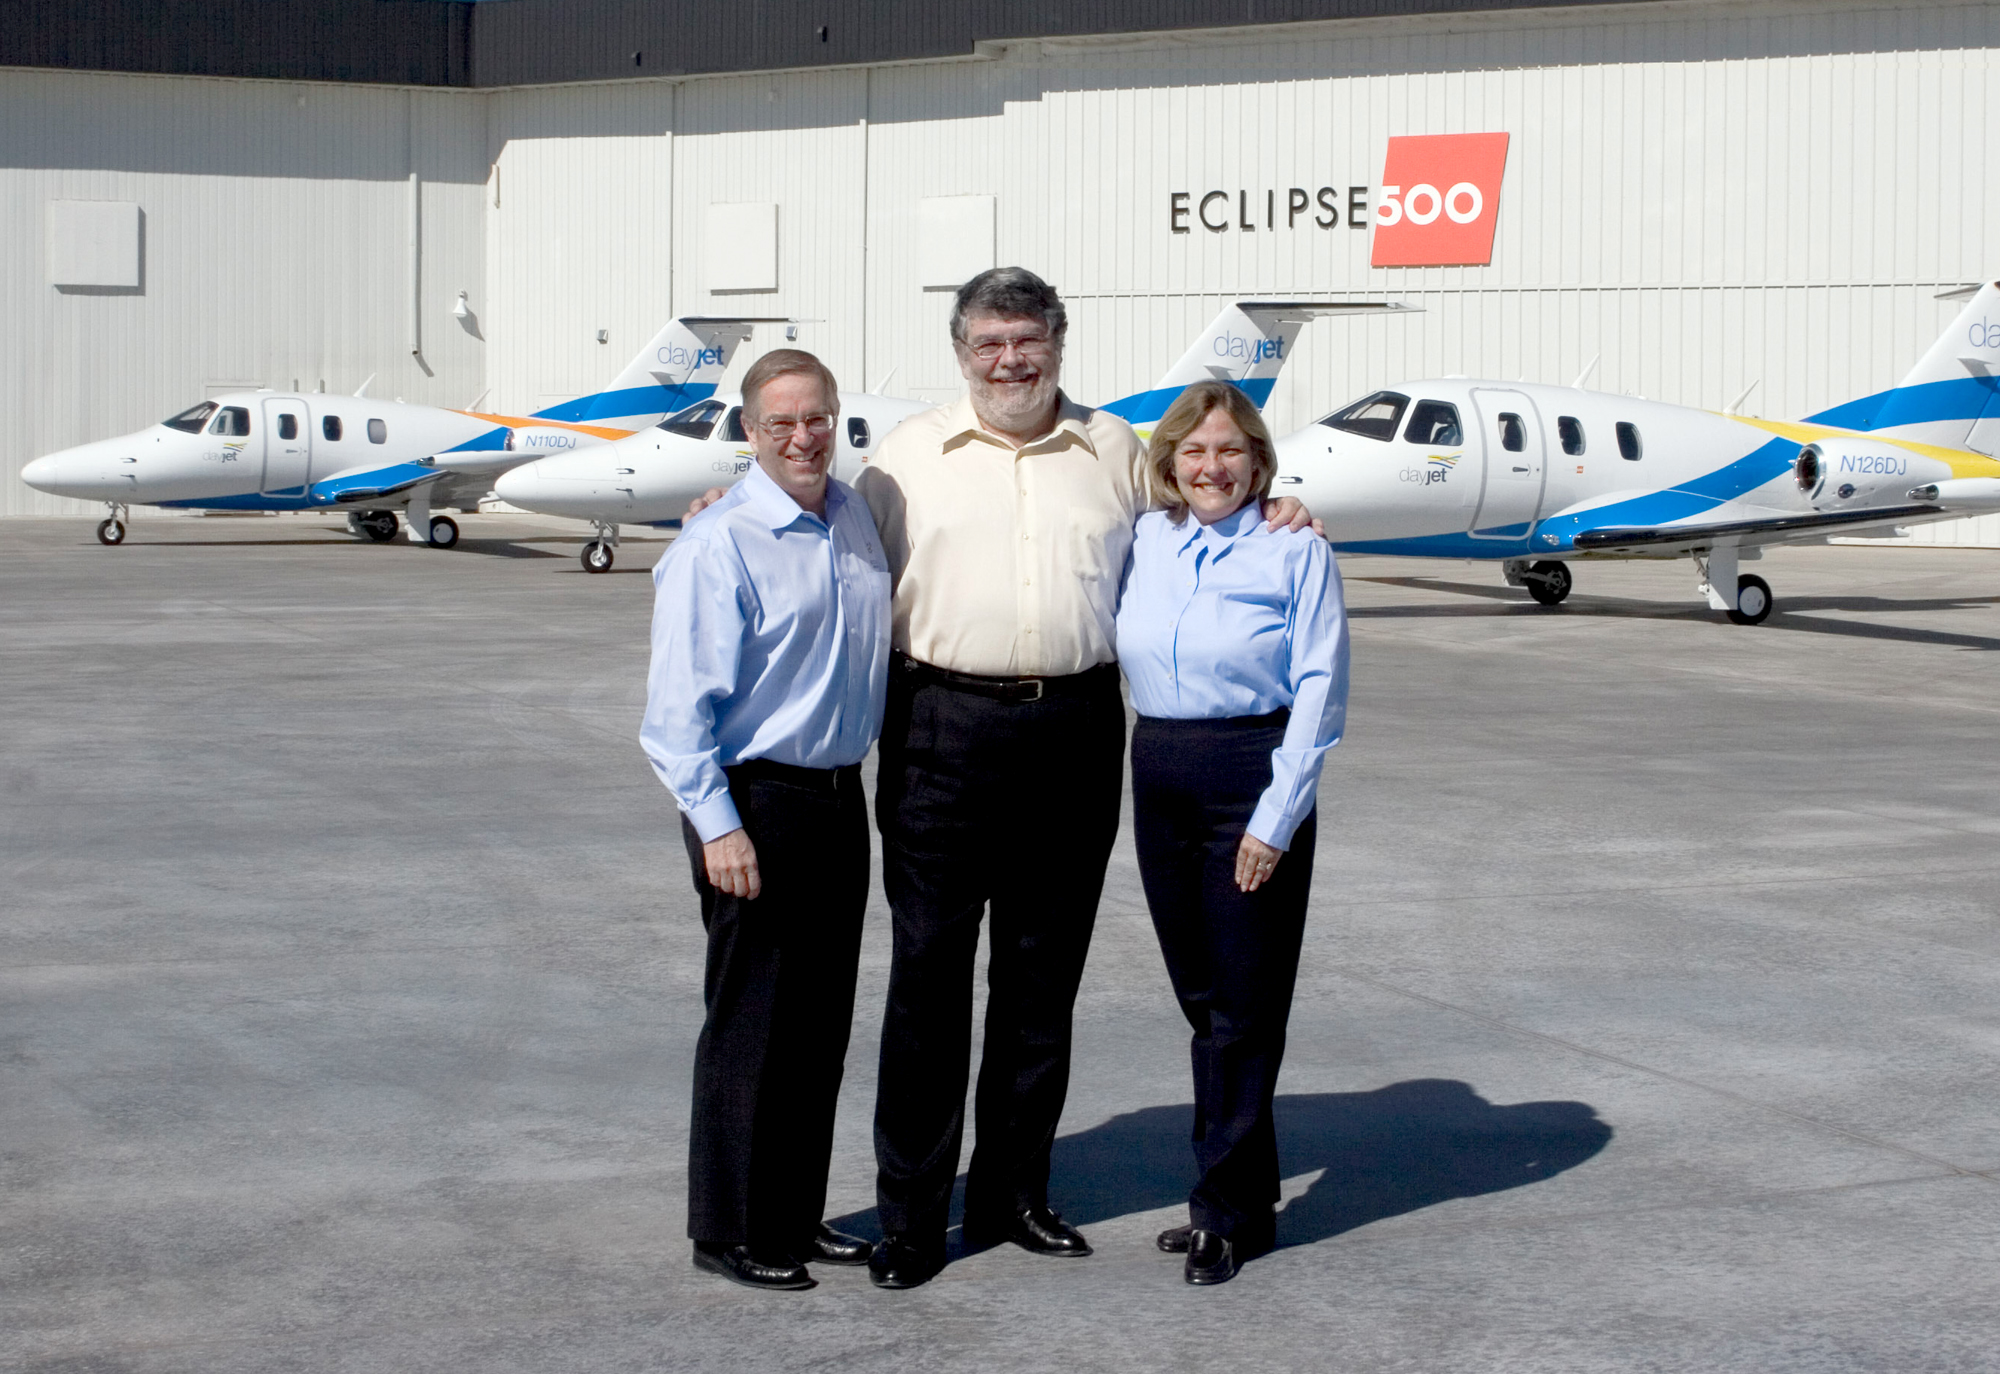 DayJet Receives Three Eclipse 500s and Gets FAA Approval on its Training Program